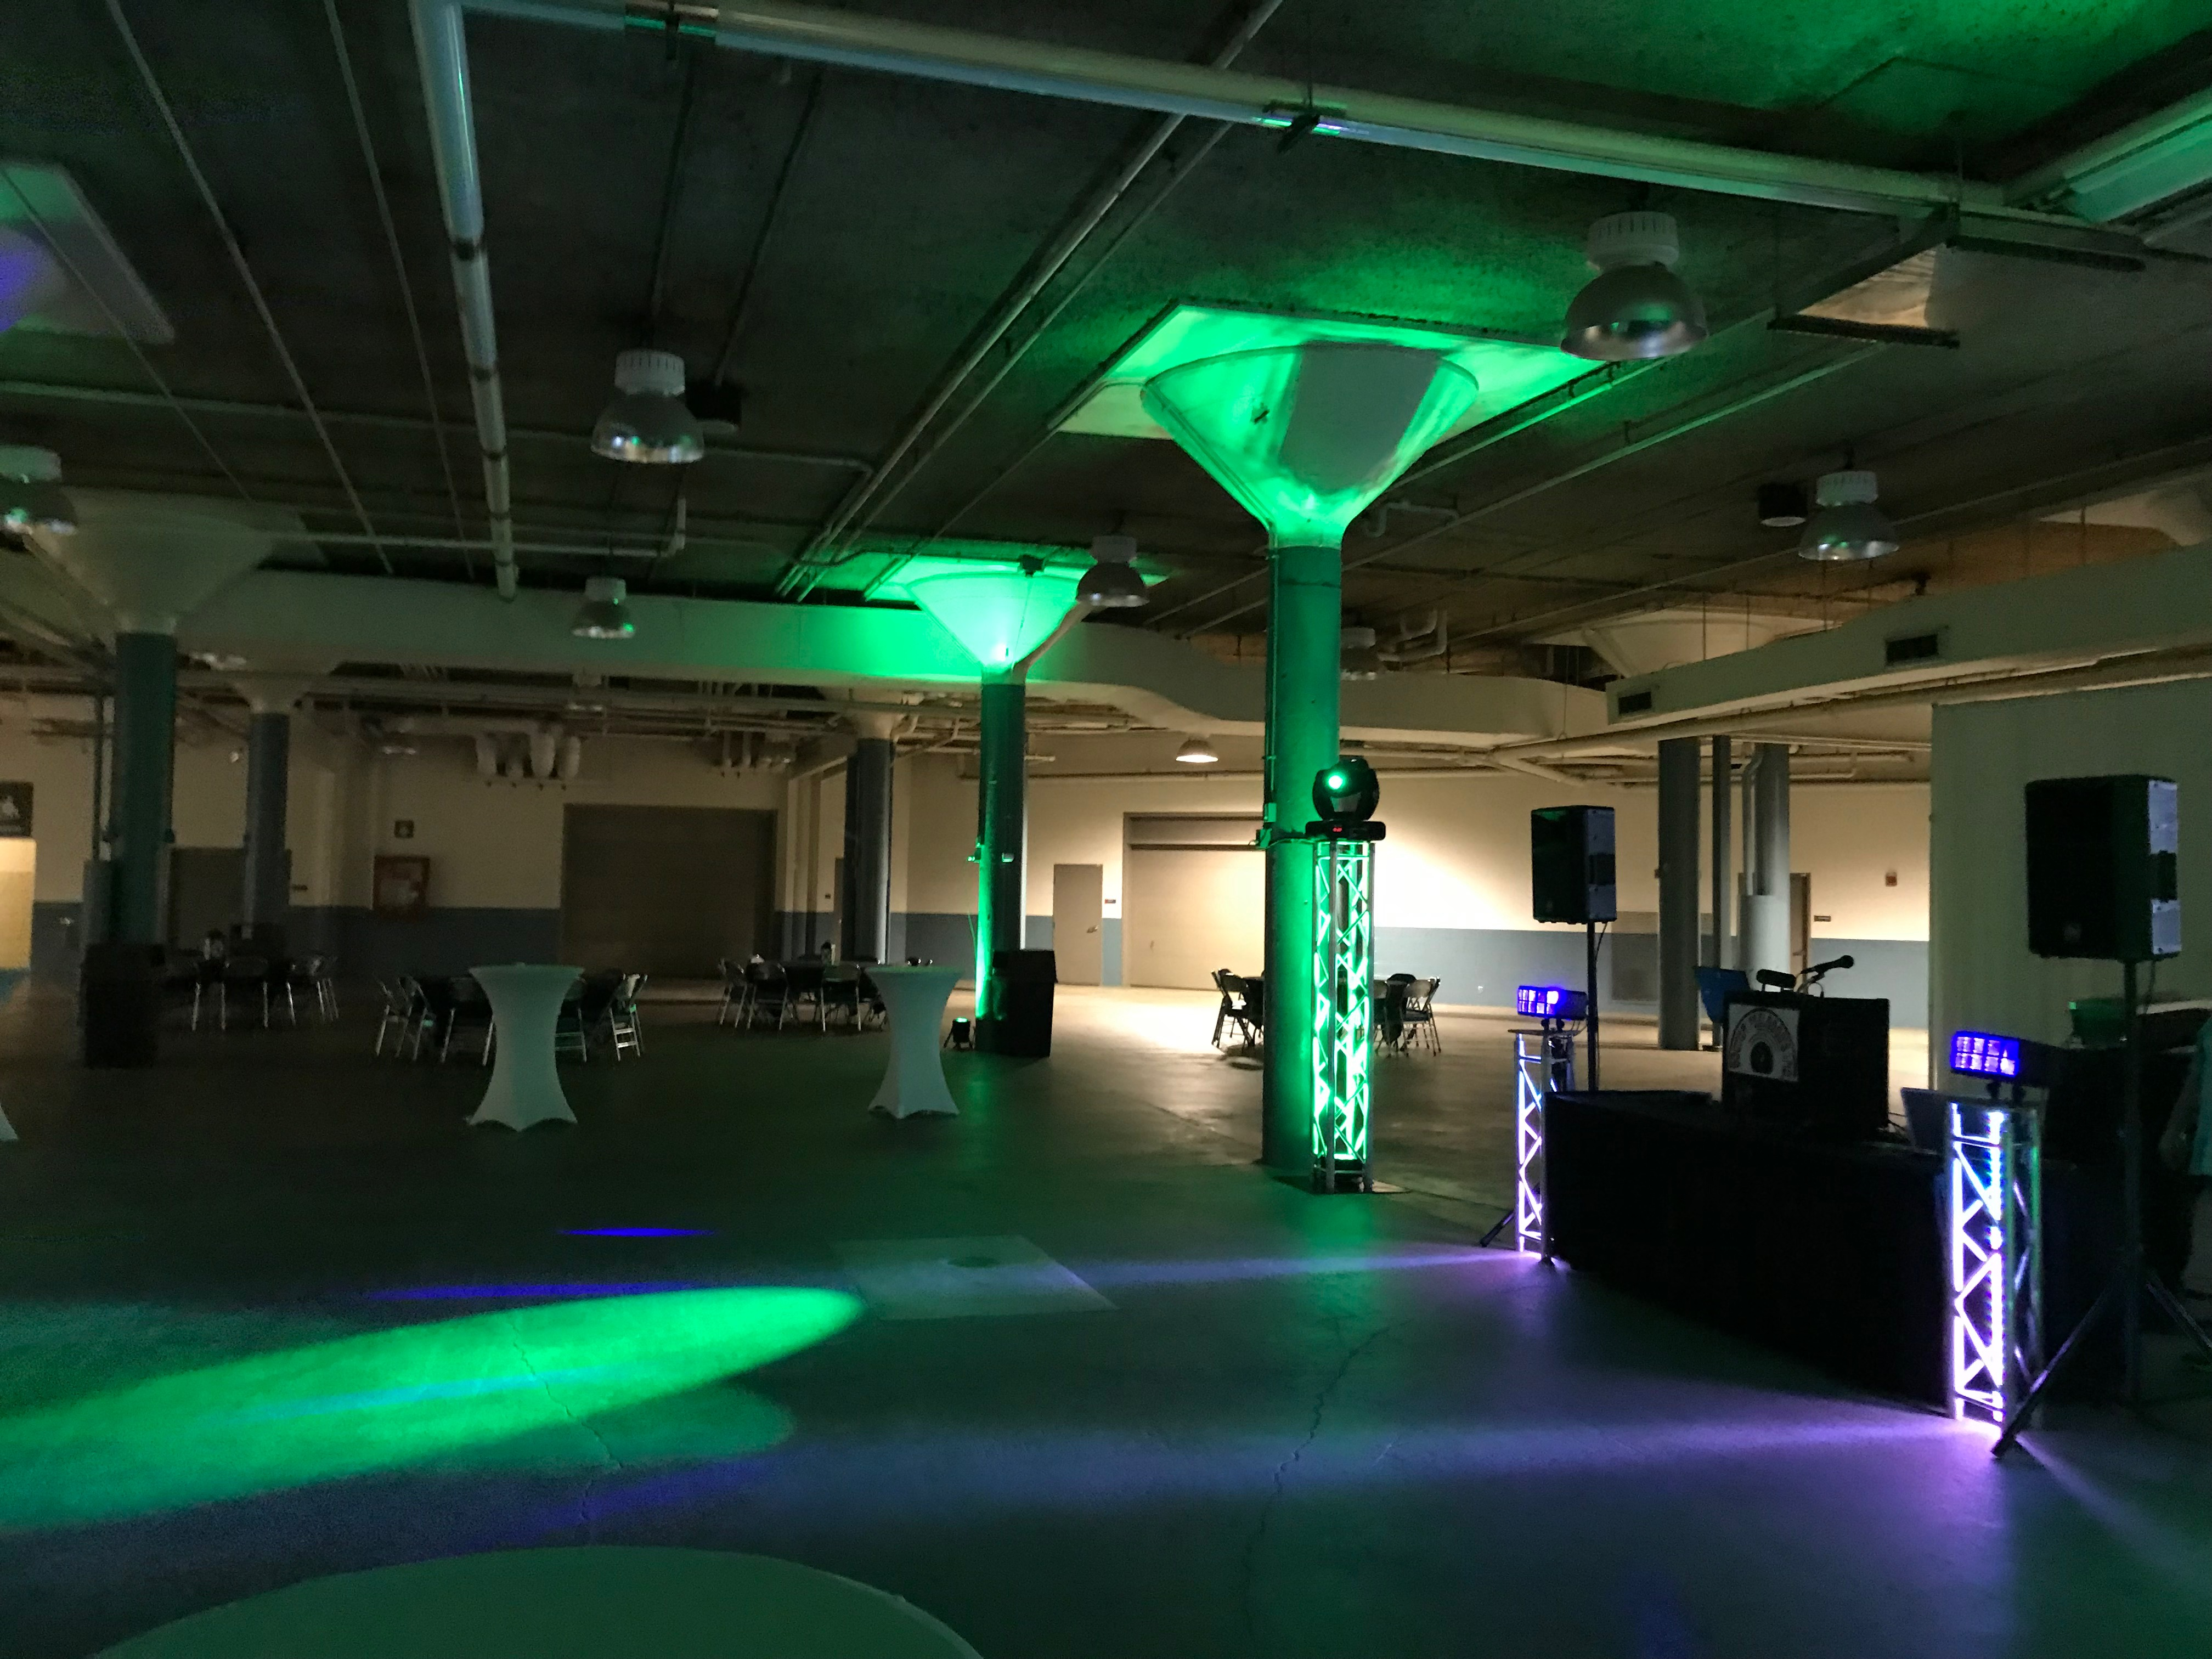 Transforming the place into a party